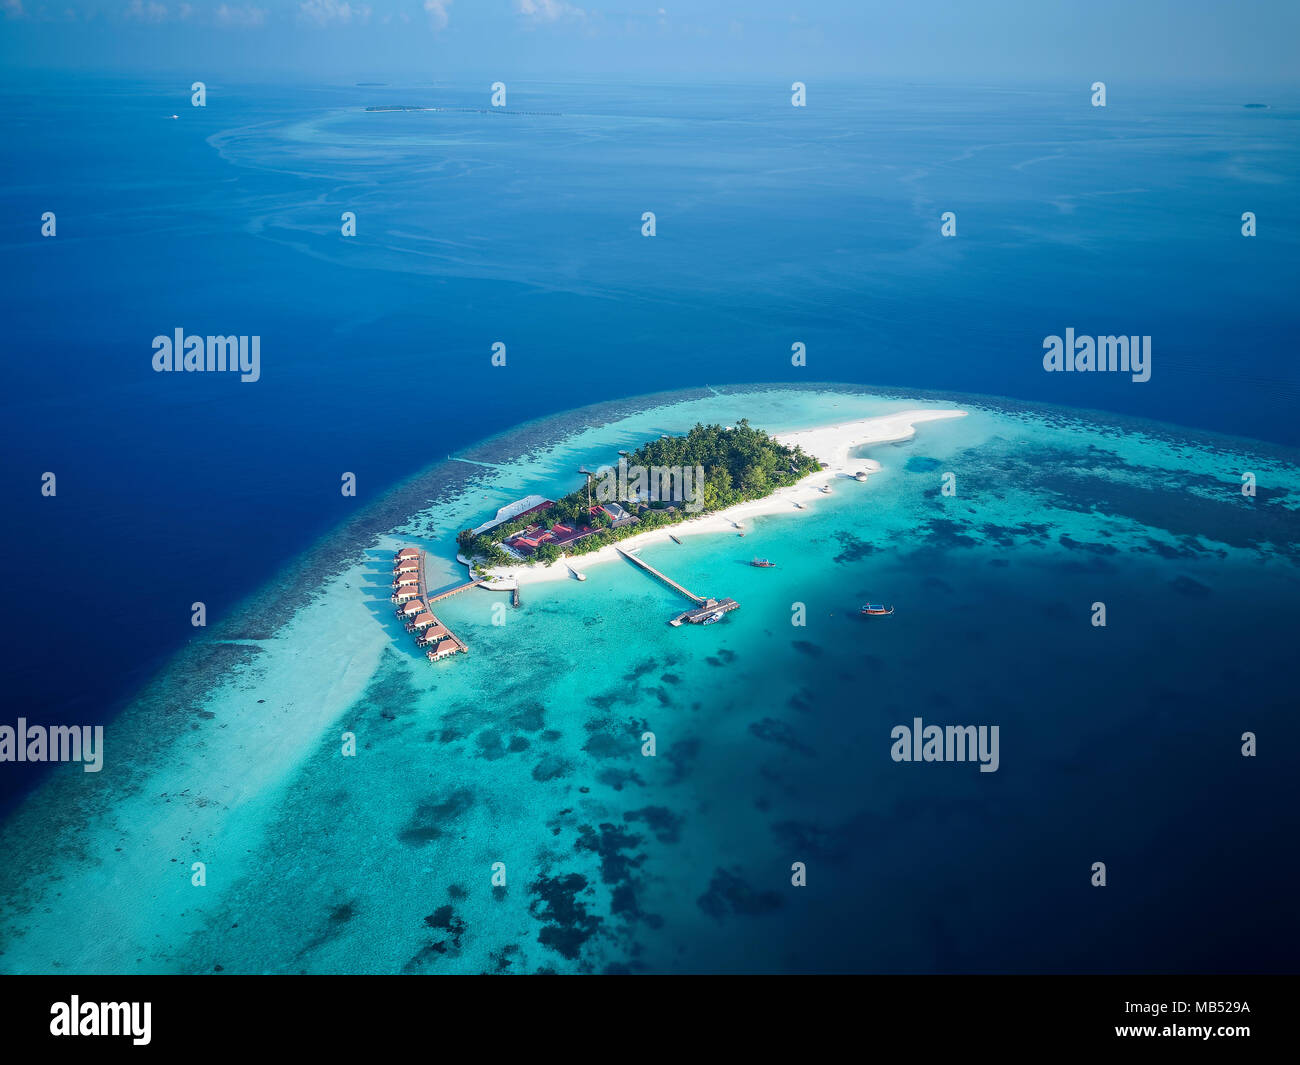 Mayaafushi Island Resort, offshore coral reef, Ari Atoll, Indian Ocean, Maldives - Stock Image